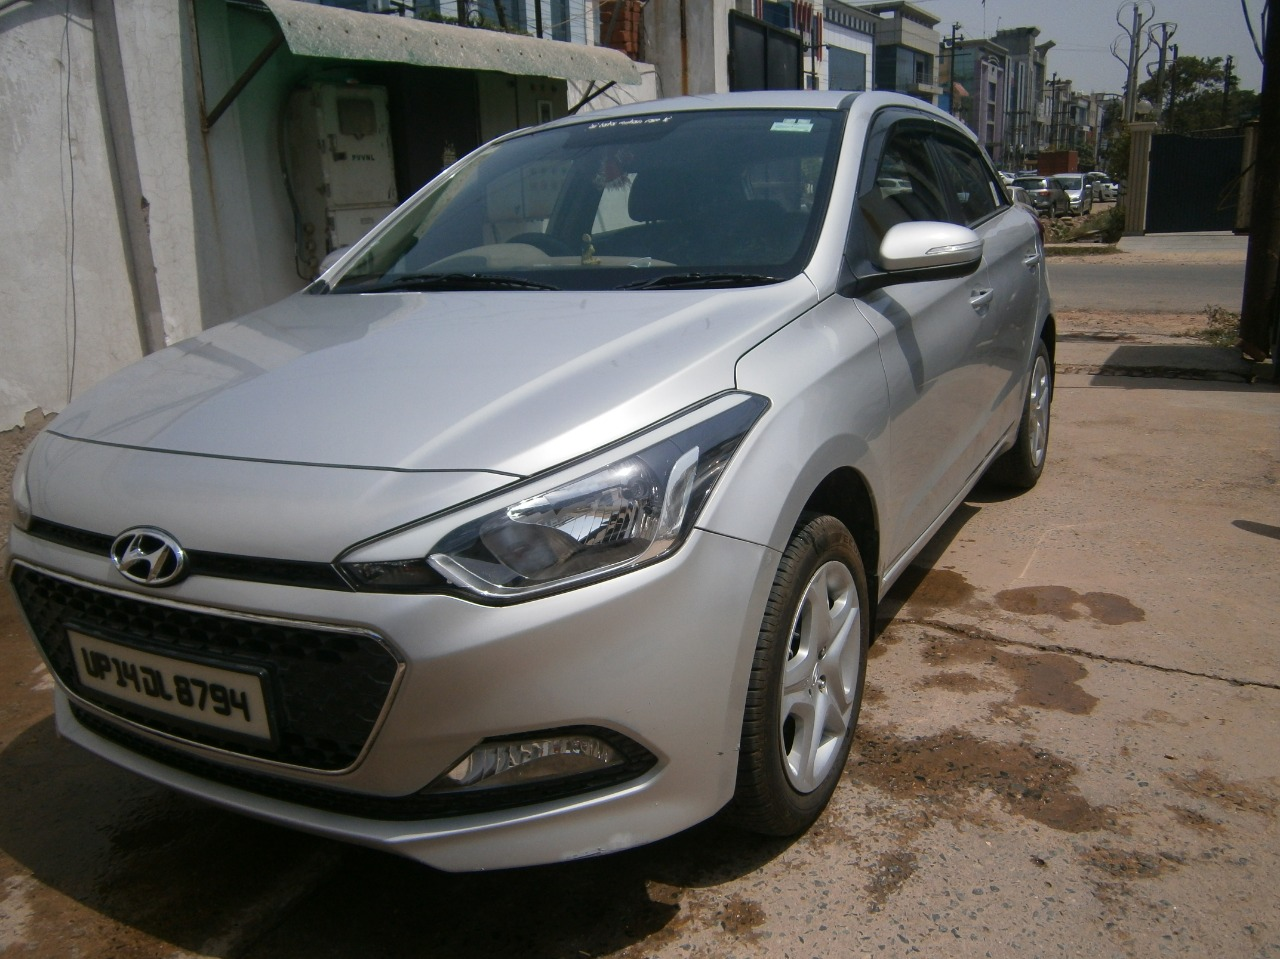 Used Hyundai I20 in Delhi - Mahindra First Choice